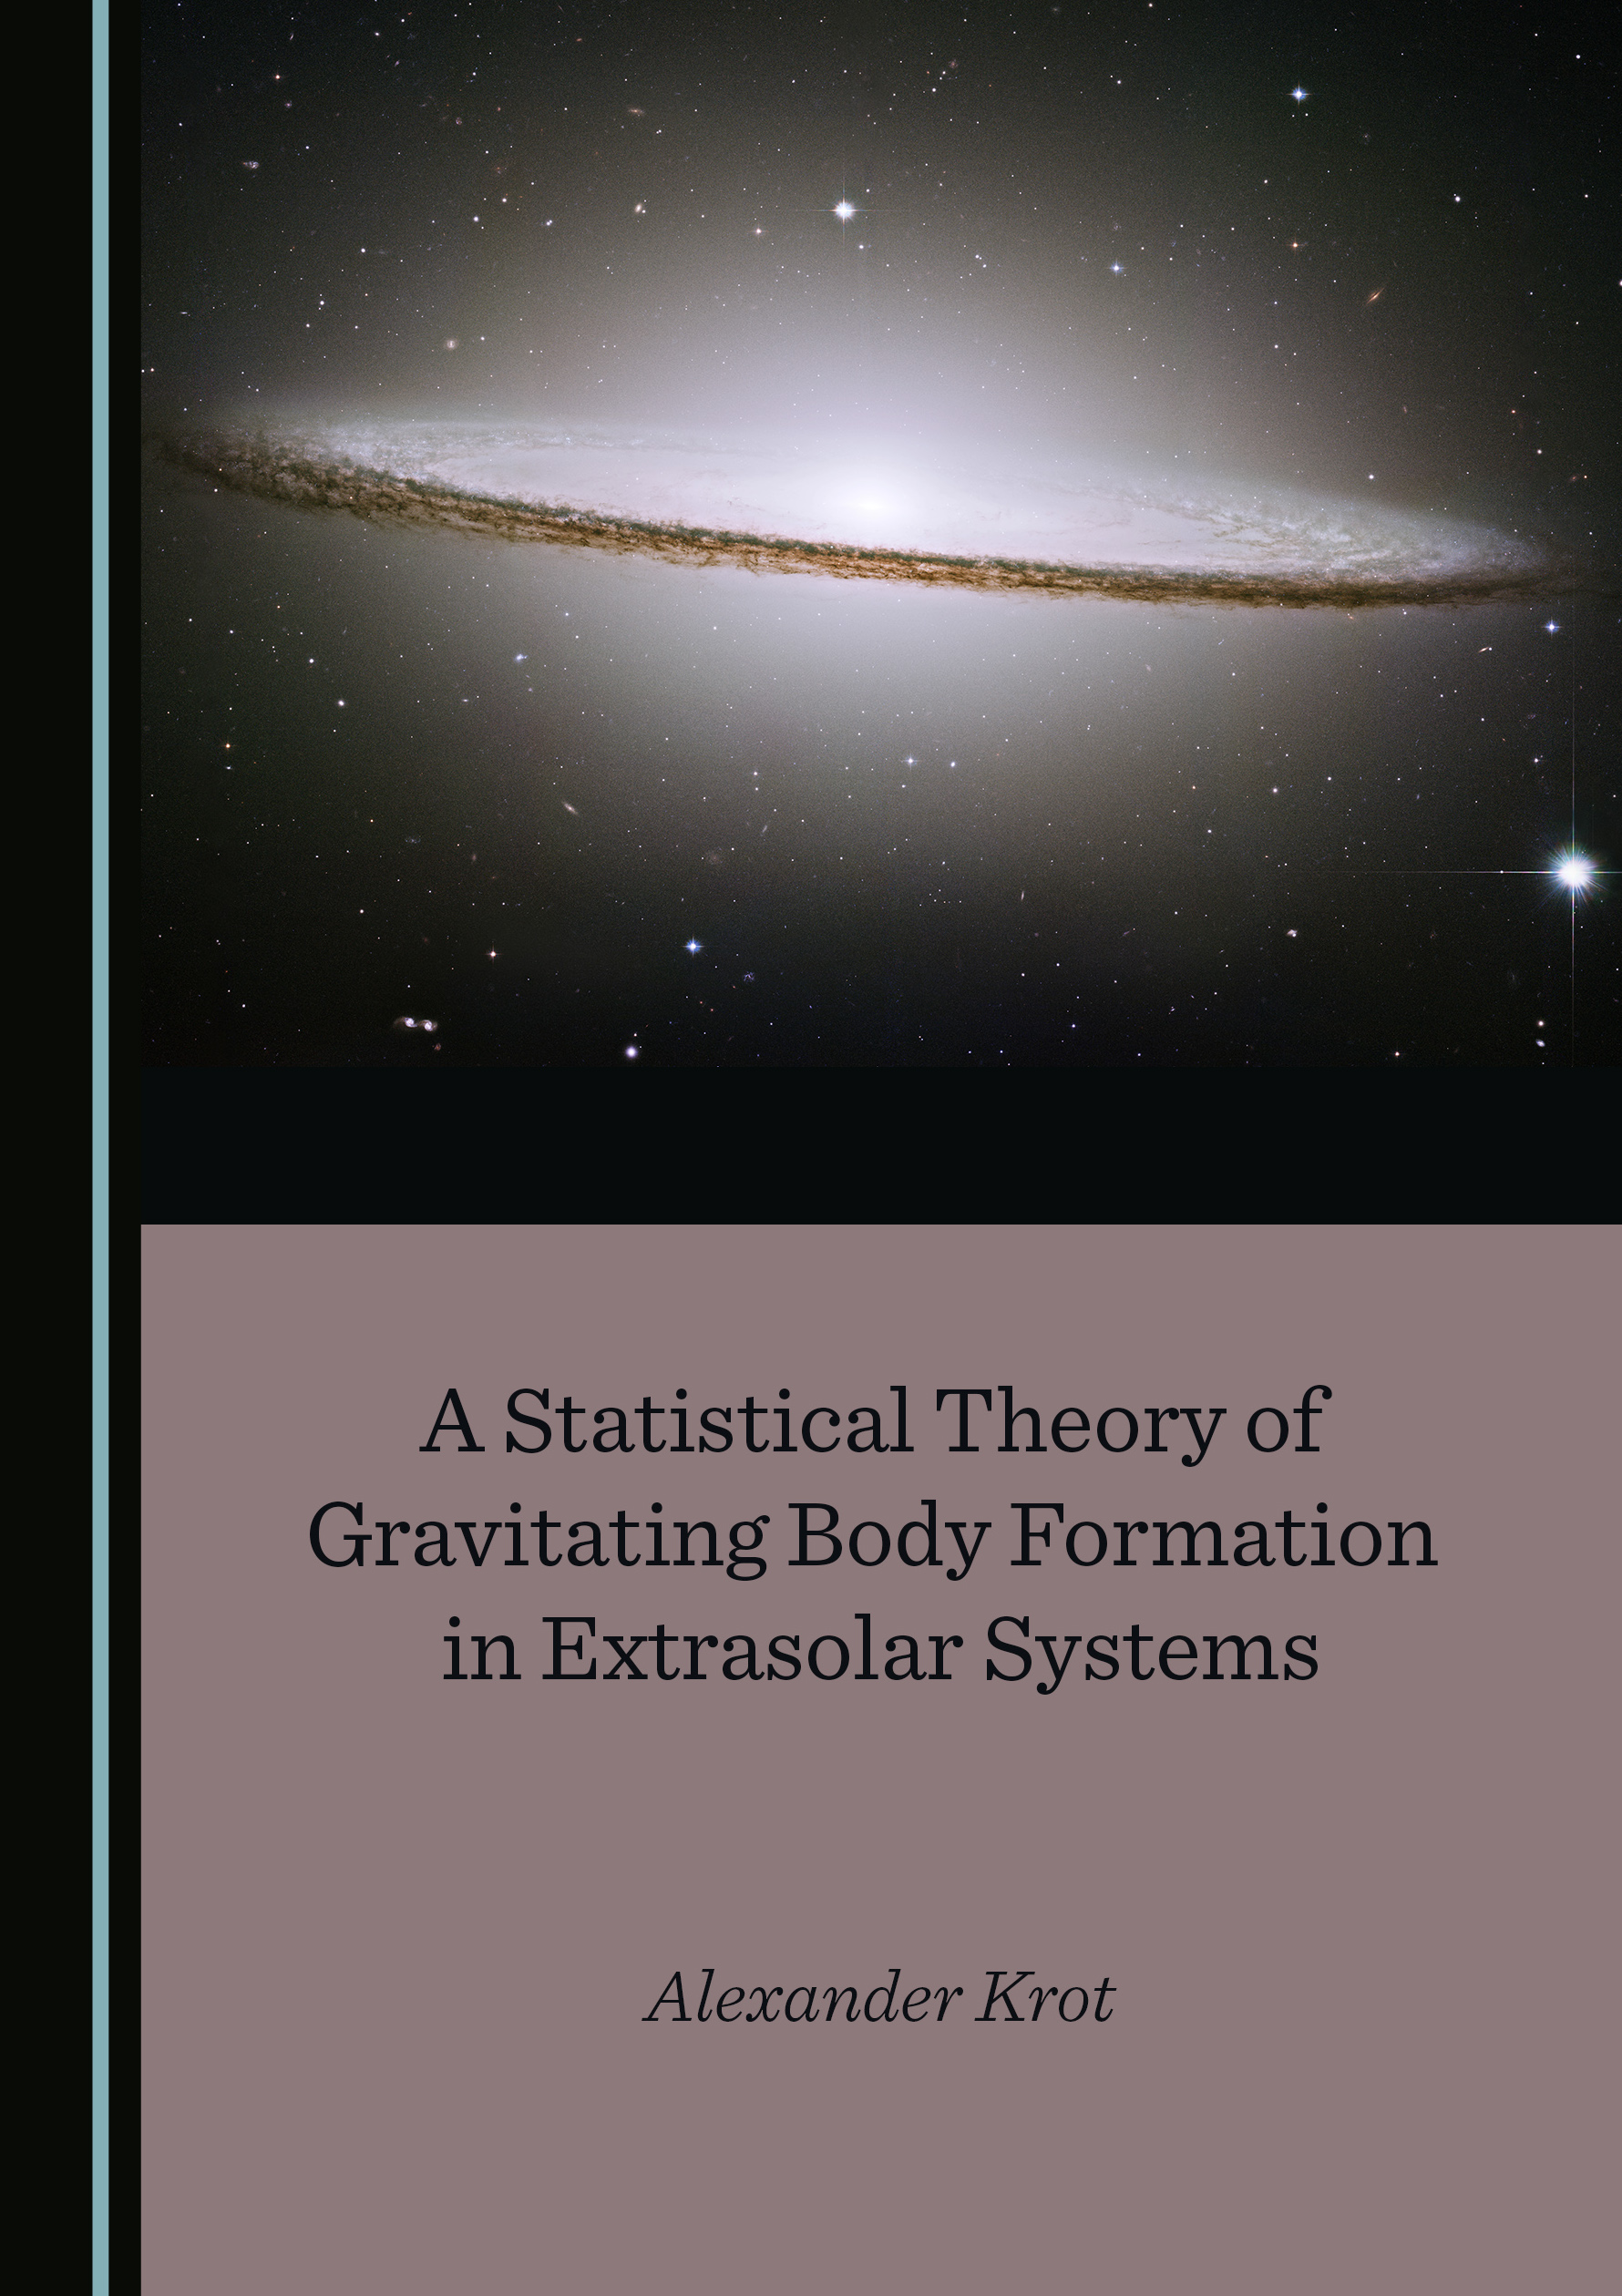 A Statistical Theory of Gravitating Body Formation in Extrasolar Systems